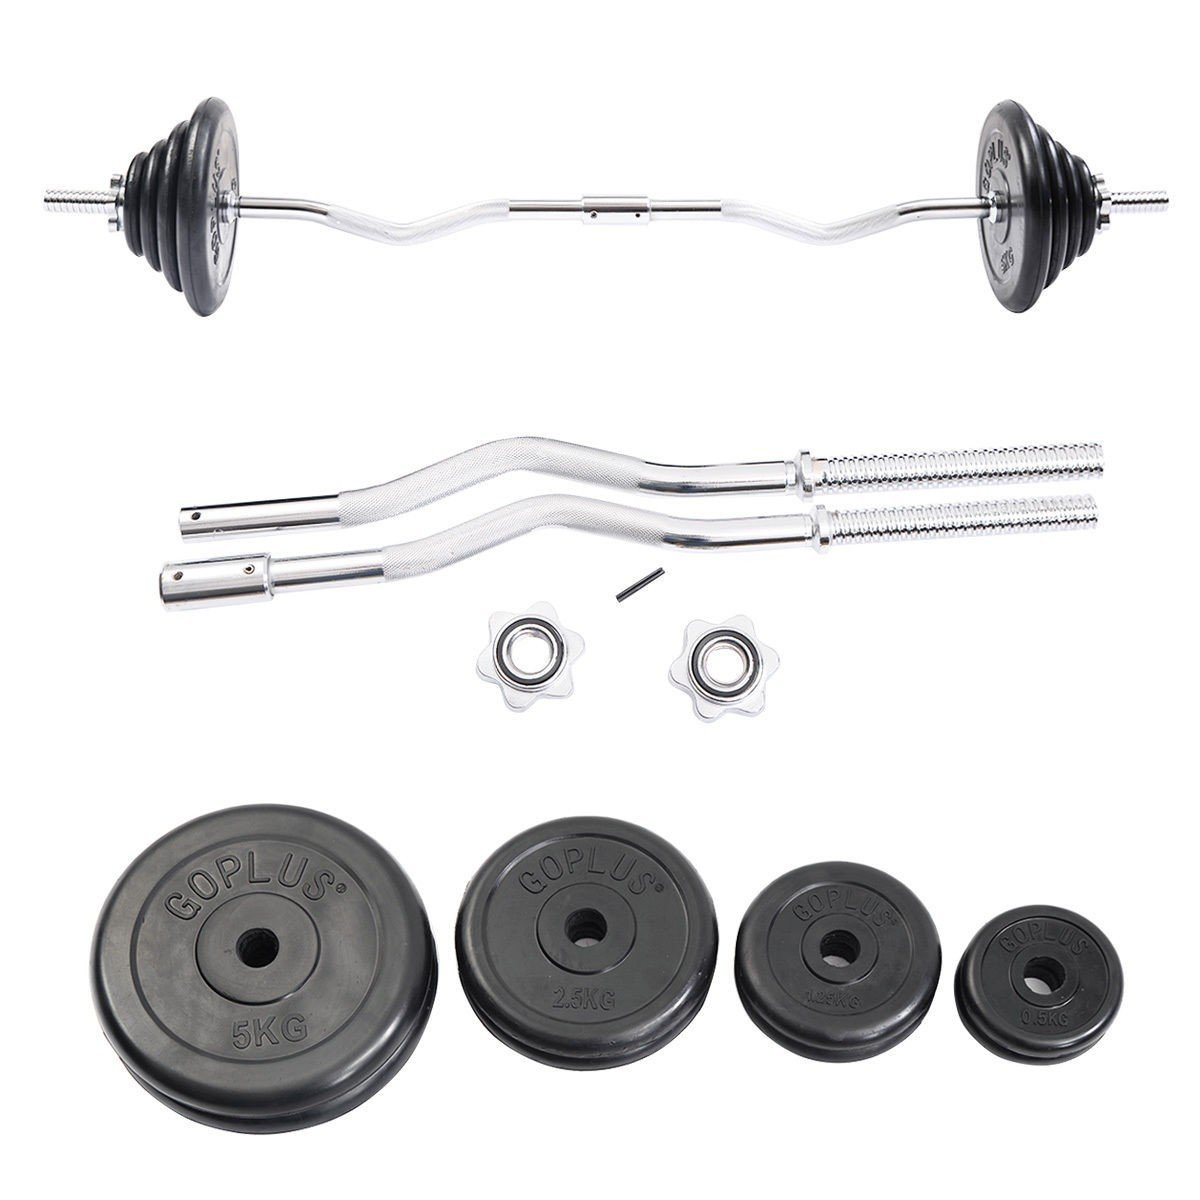 Apontus 52 lbs Gym Lifting Exercise Barbell Weight Set